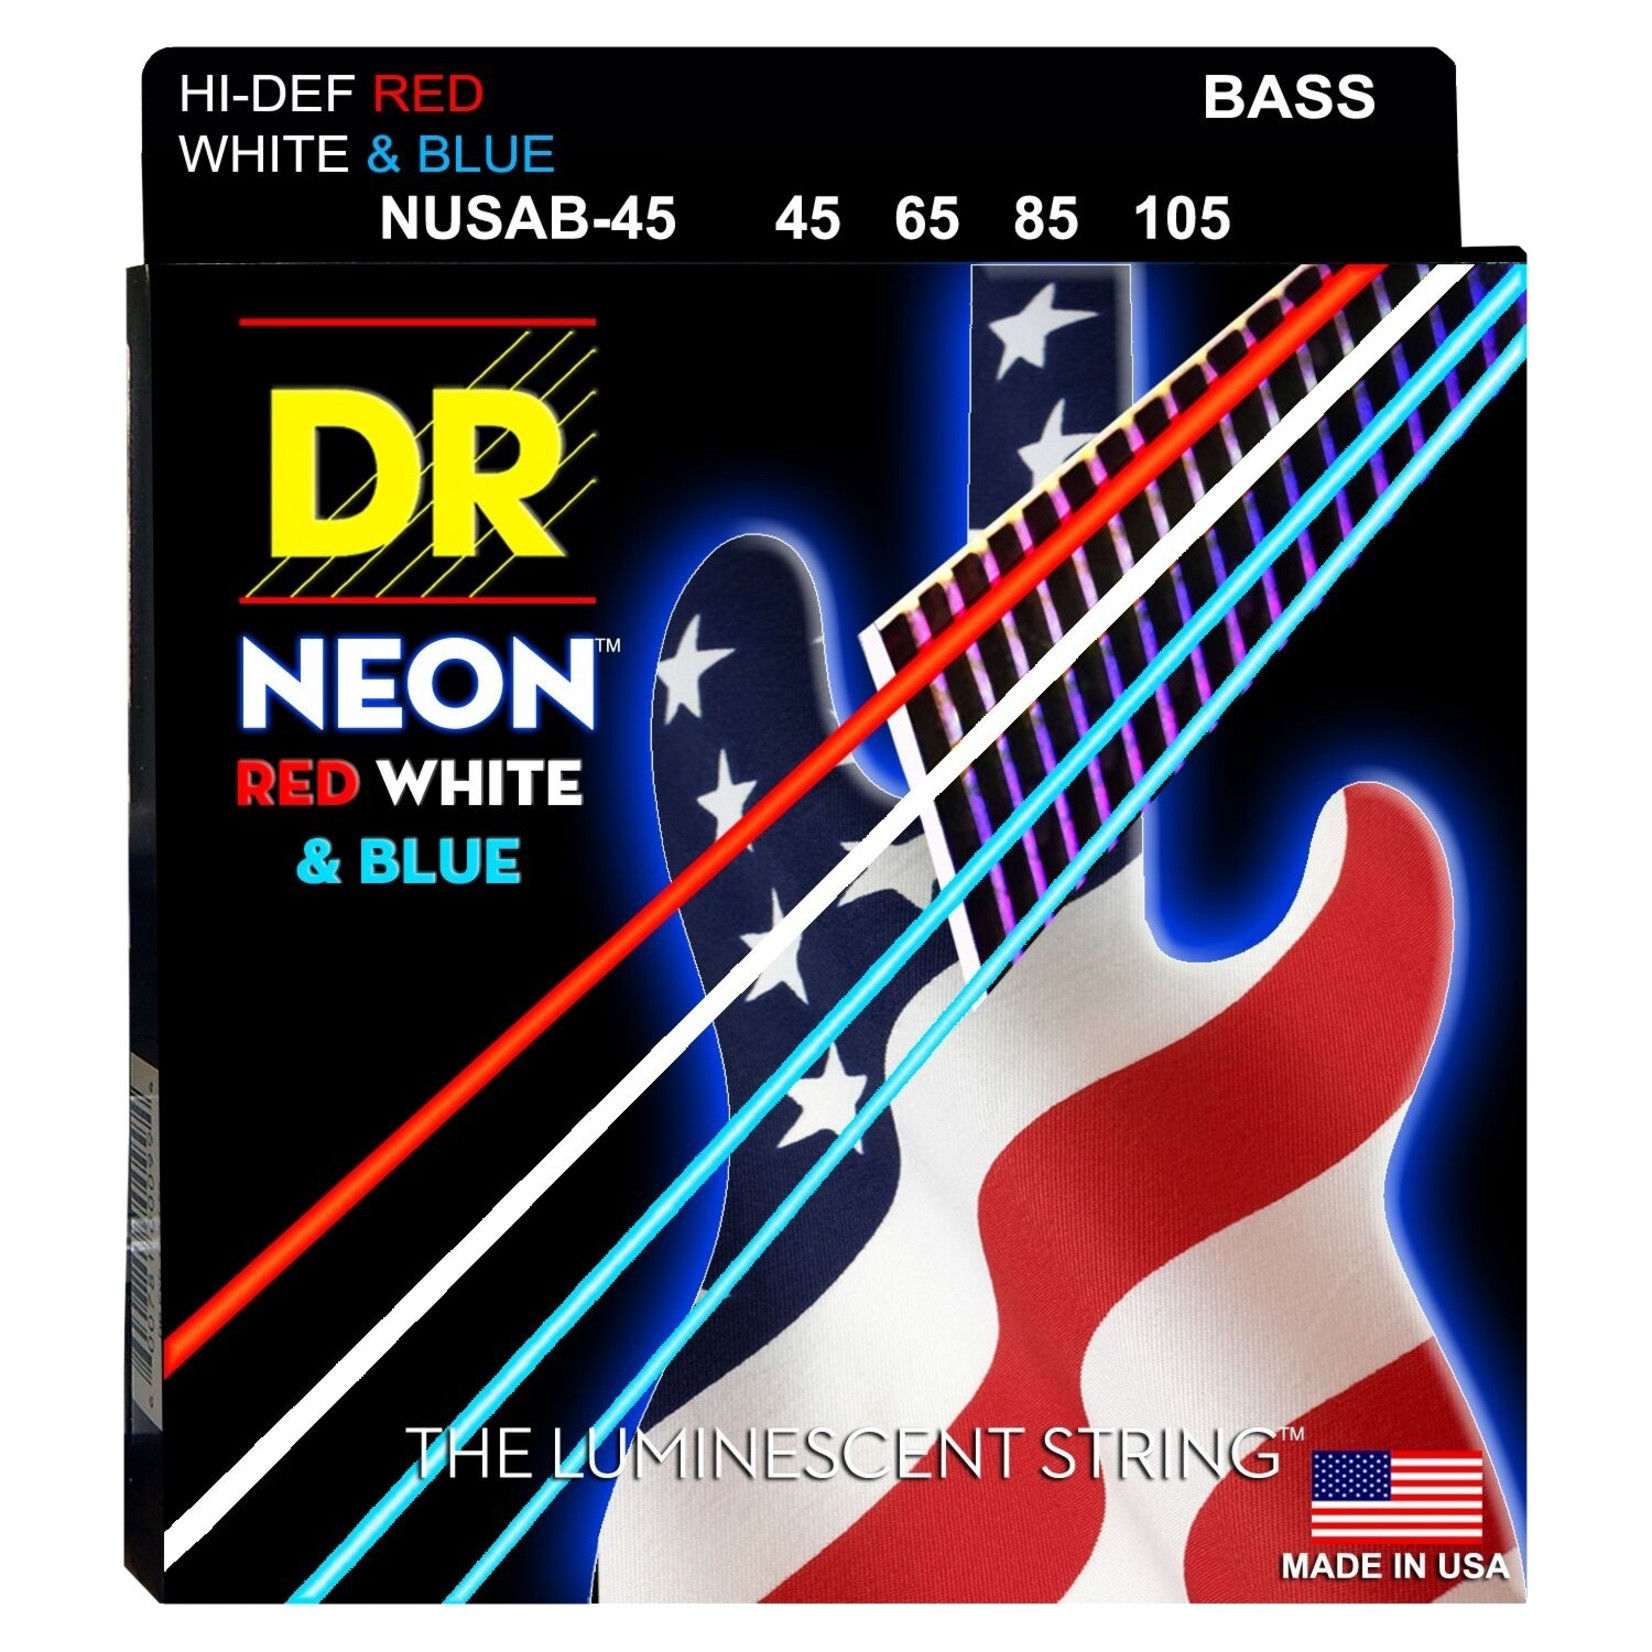 DR Strings DR NEON Red, White & Blue Coated Bass Strings (NUSAB-45) (45-105), USA Flag, Patriotic, America